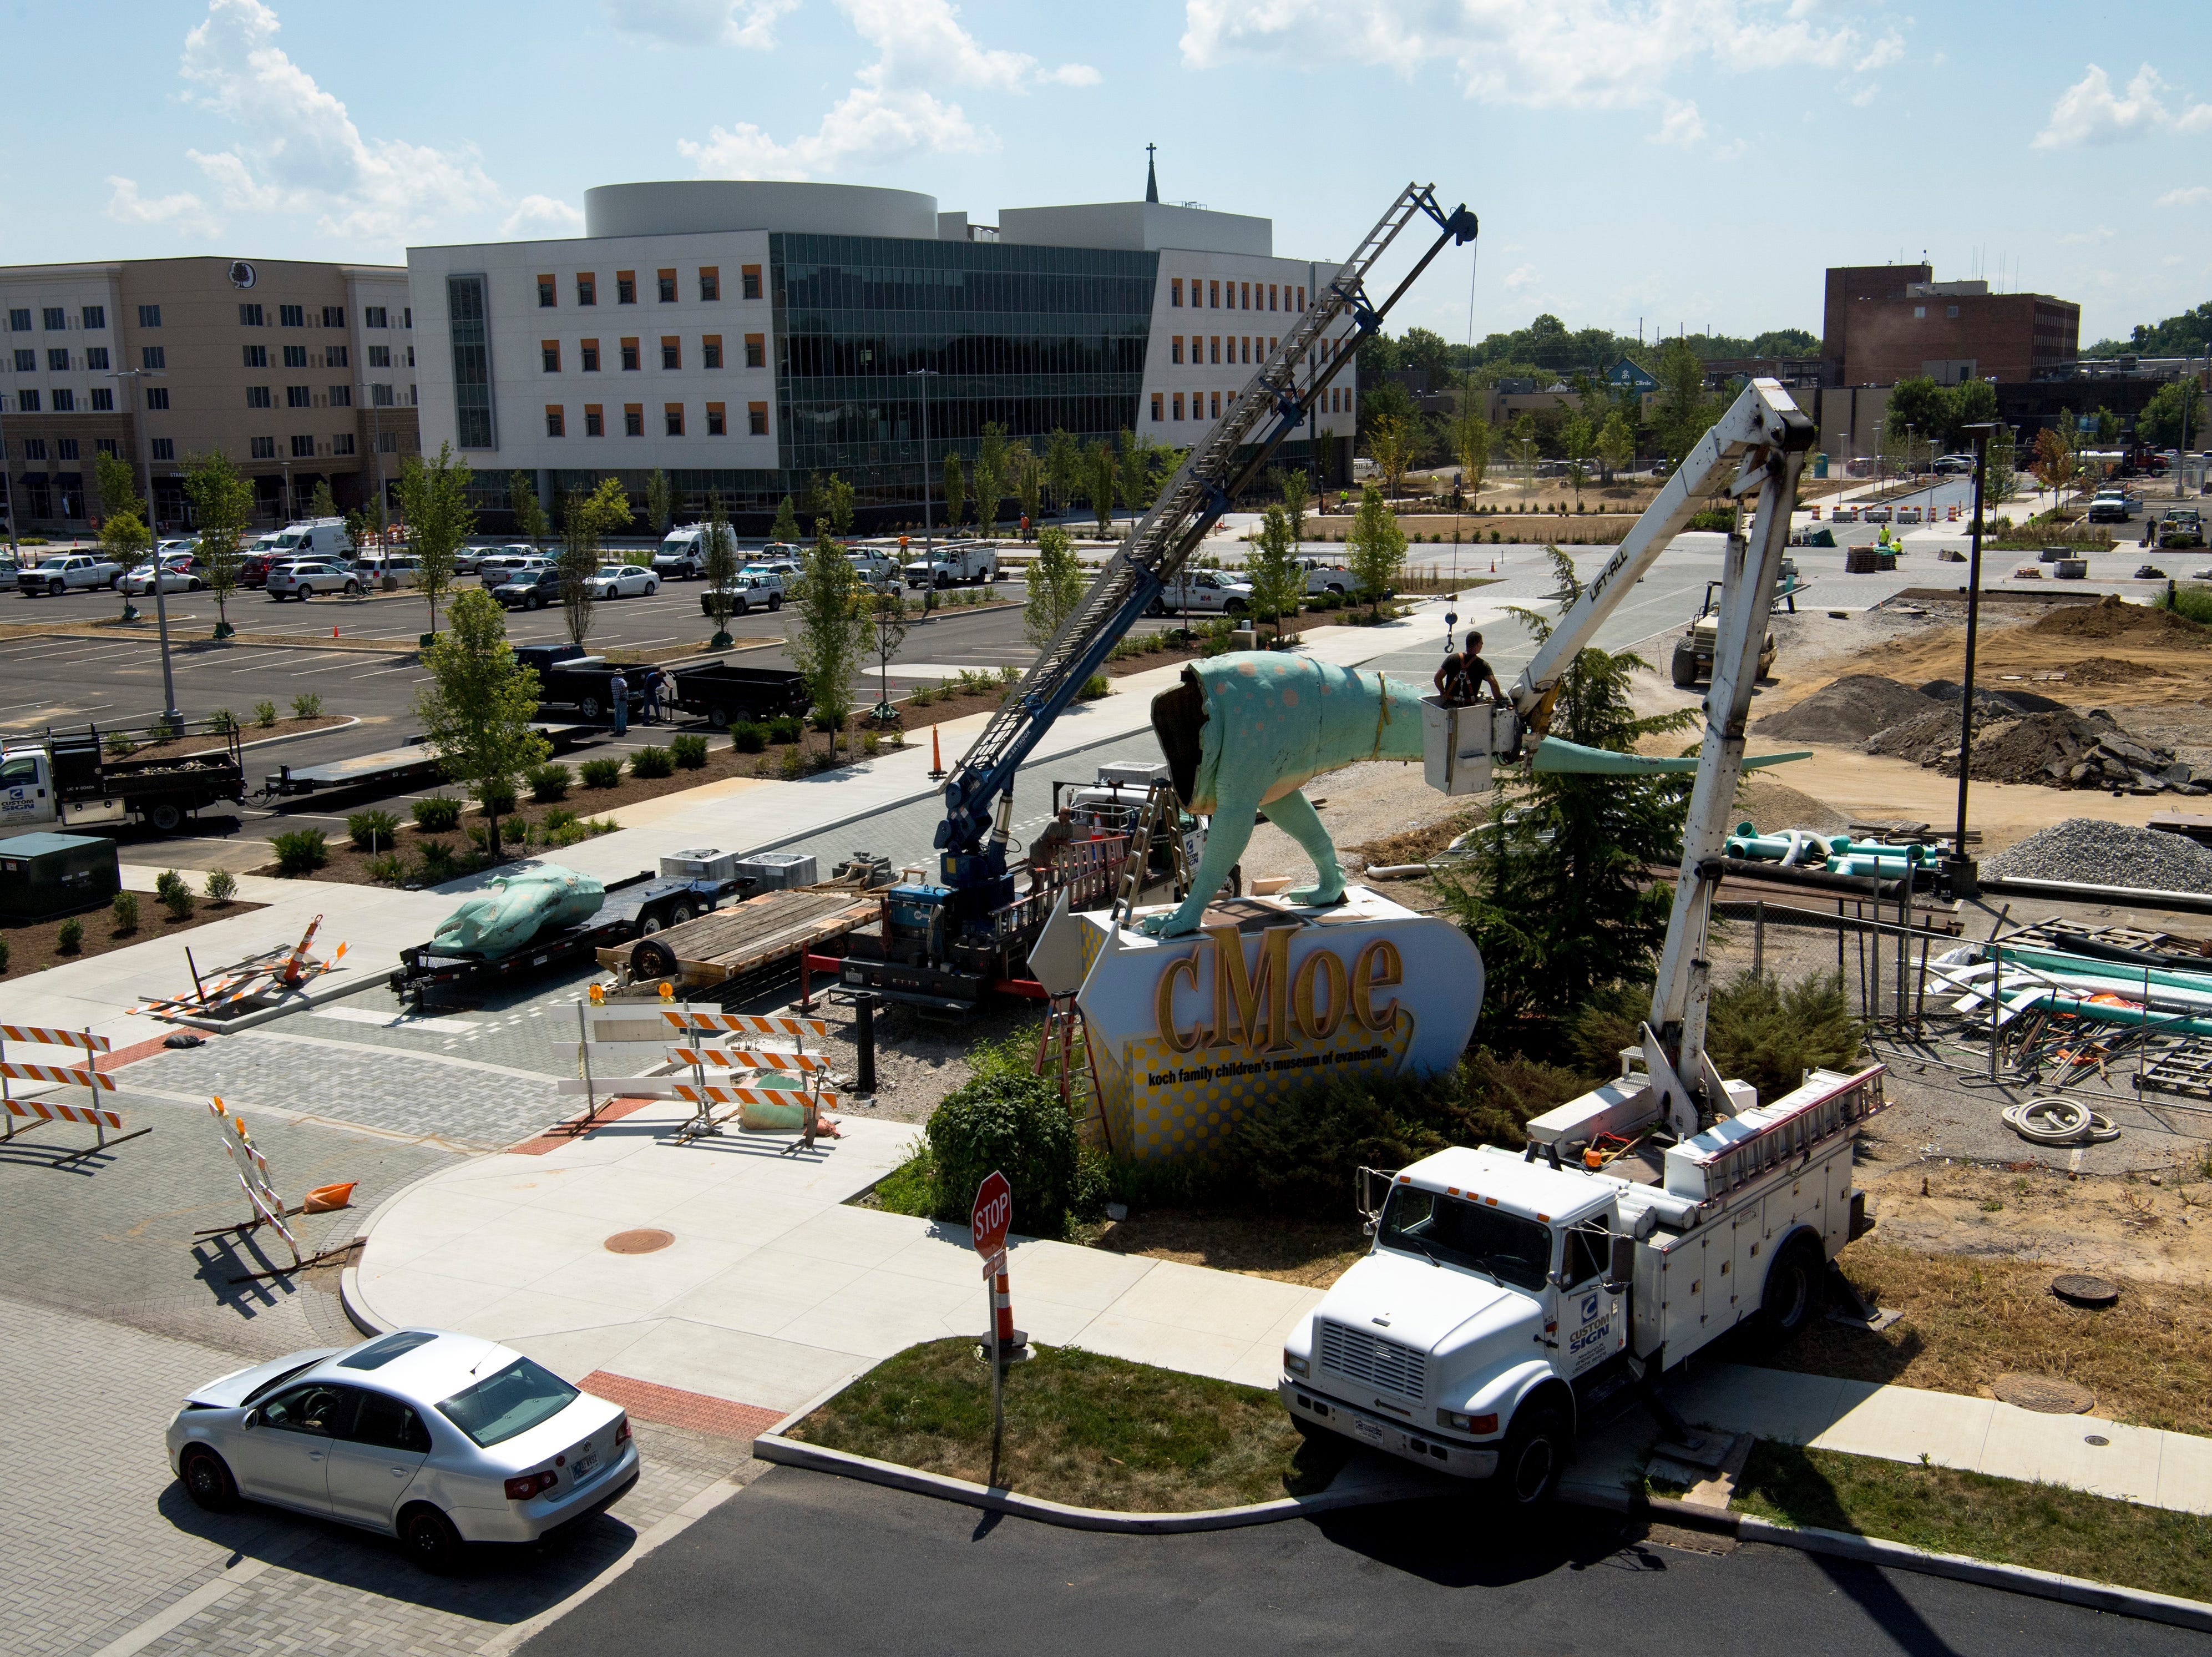 Millie, a Tyrannosaurus Rex dinosaur – and the Koch Family Children's Museum of Evansville's most recognizable face – is disassembled by the team from Custom Sign of Newburgh, Ind., Wednesday morning. Millie has perched atop her pedestal at the corner of Locust and Fifth streets for more than a decade and is getting a new paint job. It is unknown where the green T-Rex will reside after her facelift, but cMoe assures us Millie's new home will be easily seen in the Downtown Evansville area.